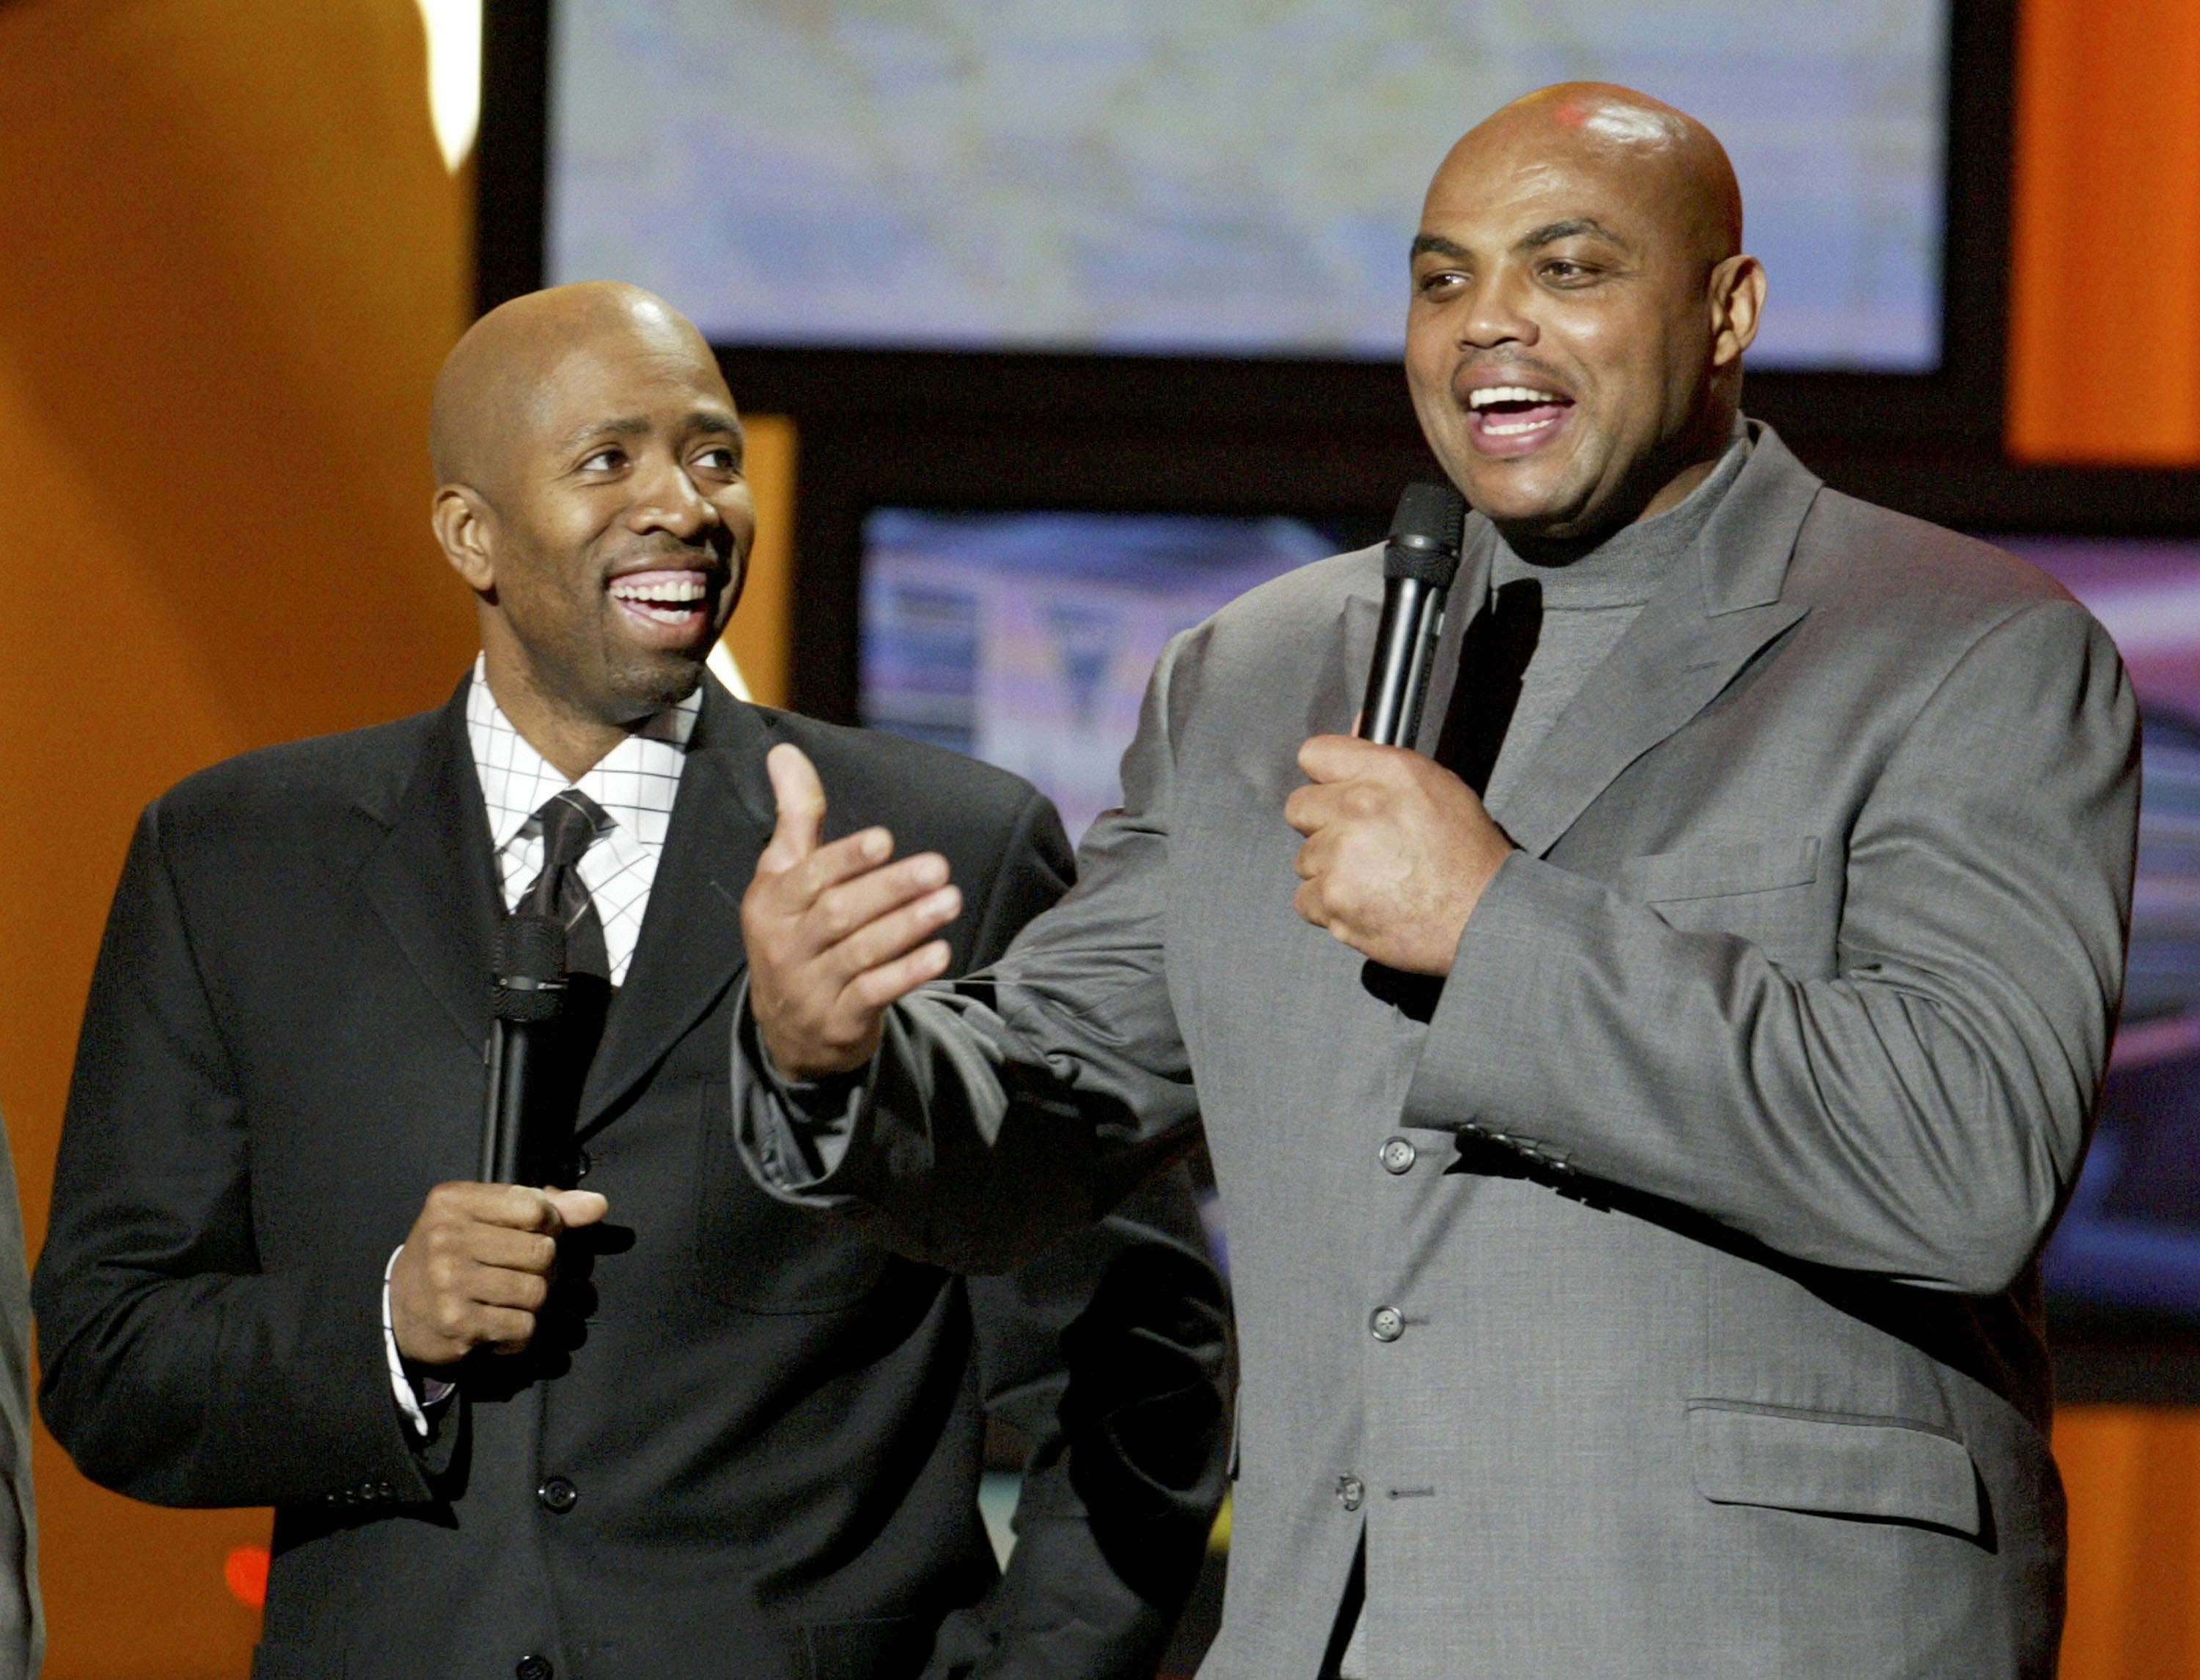 Kenny Smith responds to Charles Barkley's comments on Ferguson